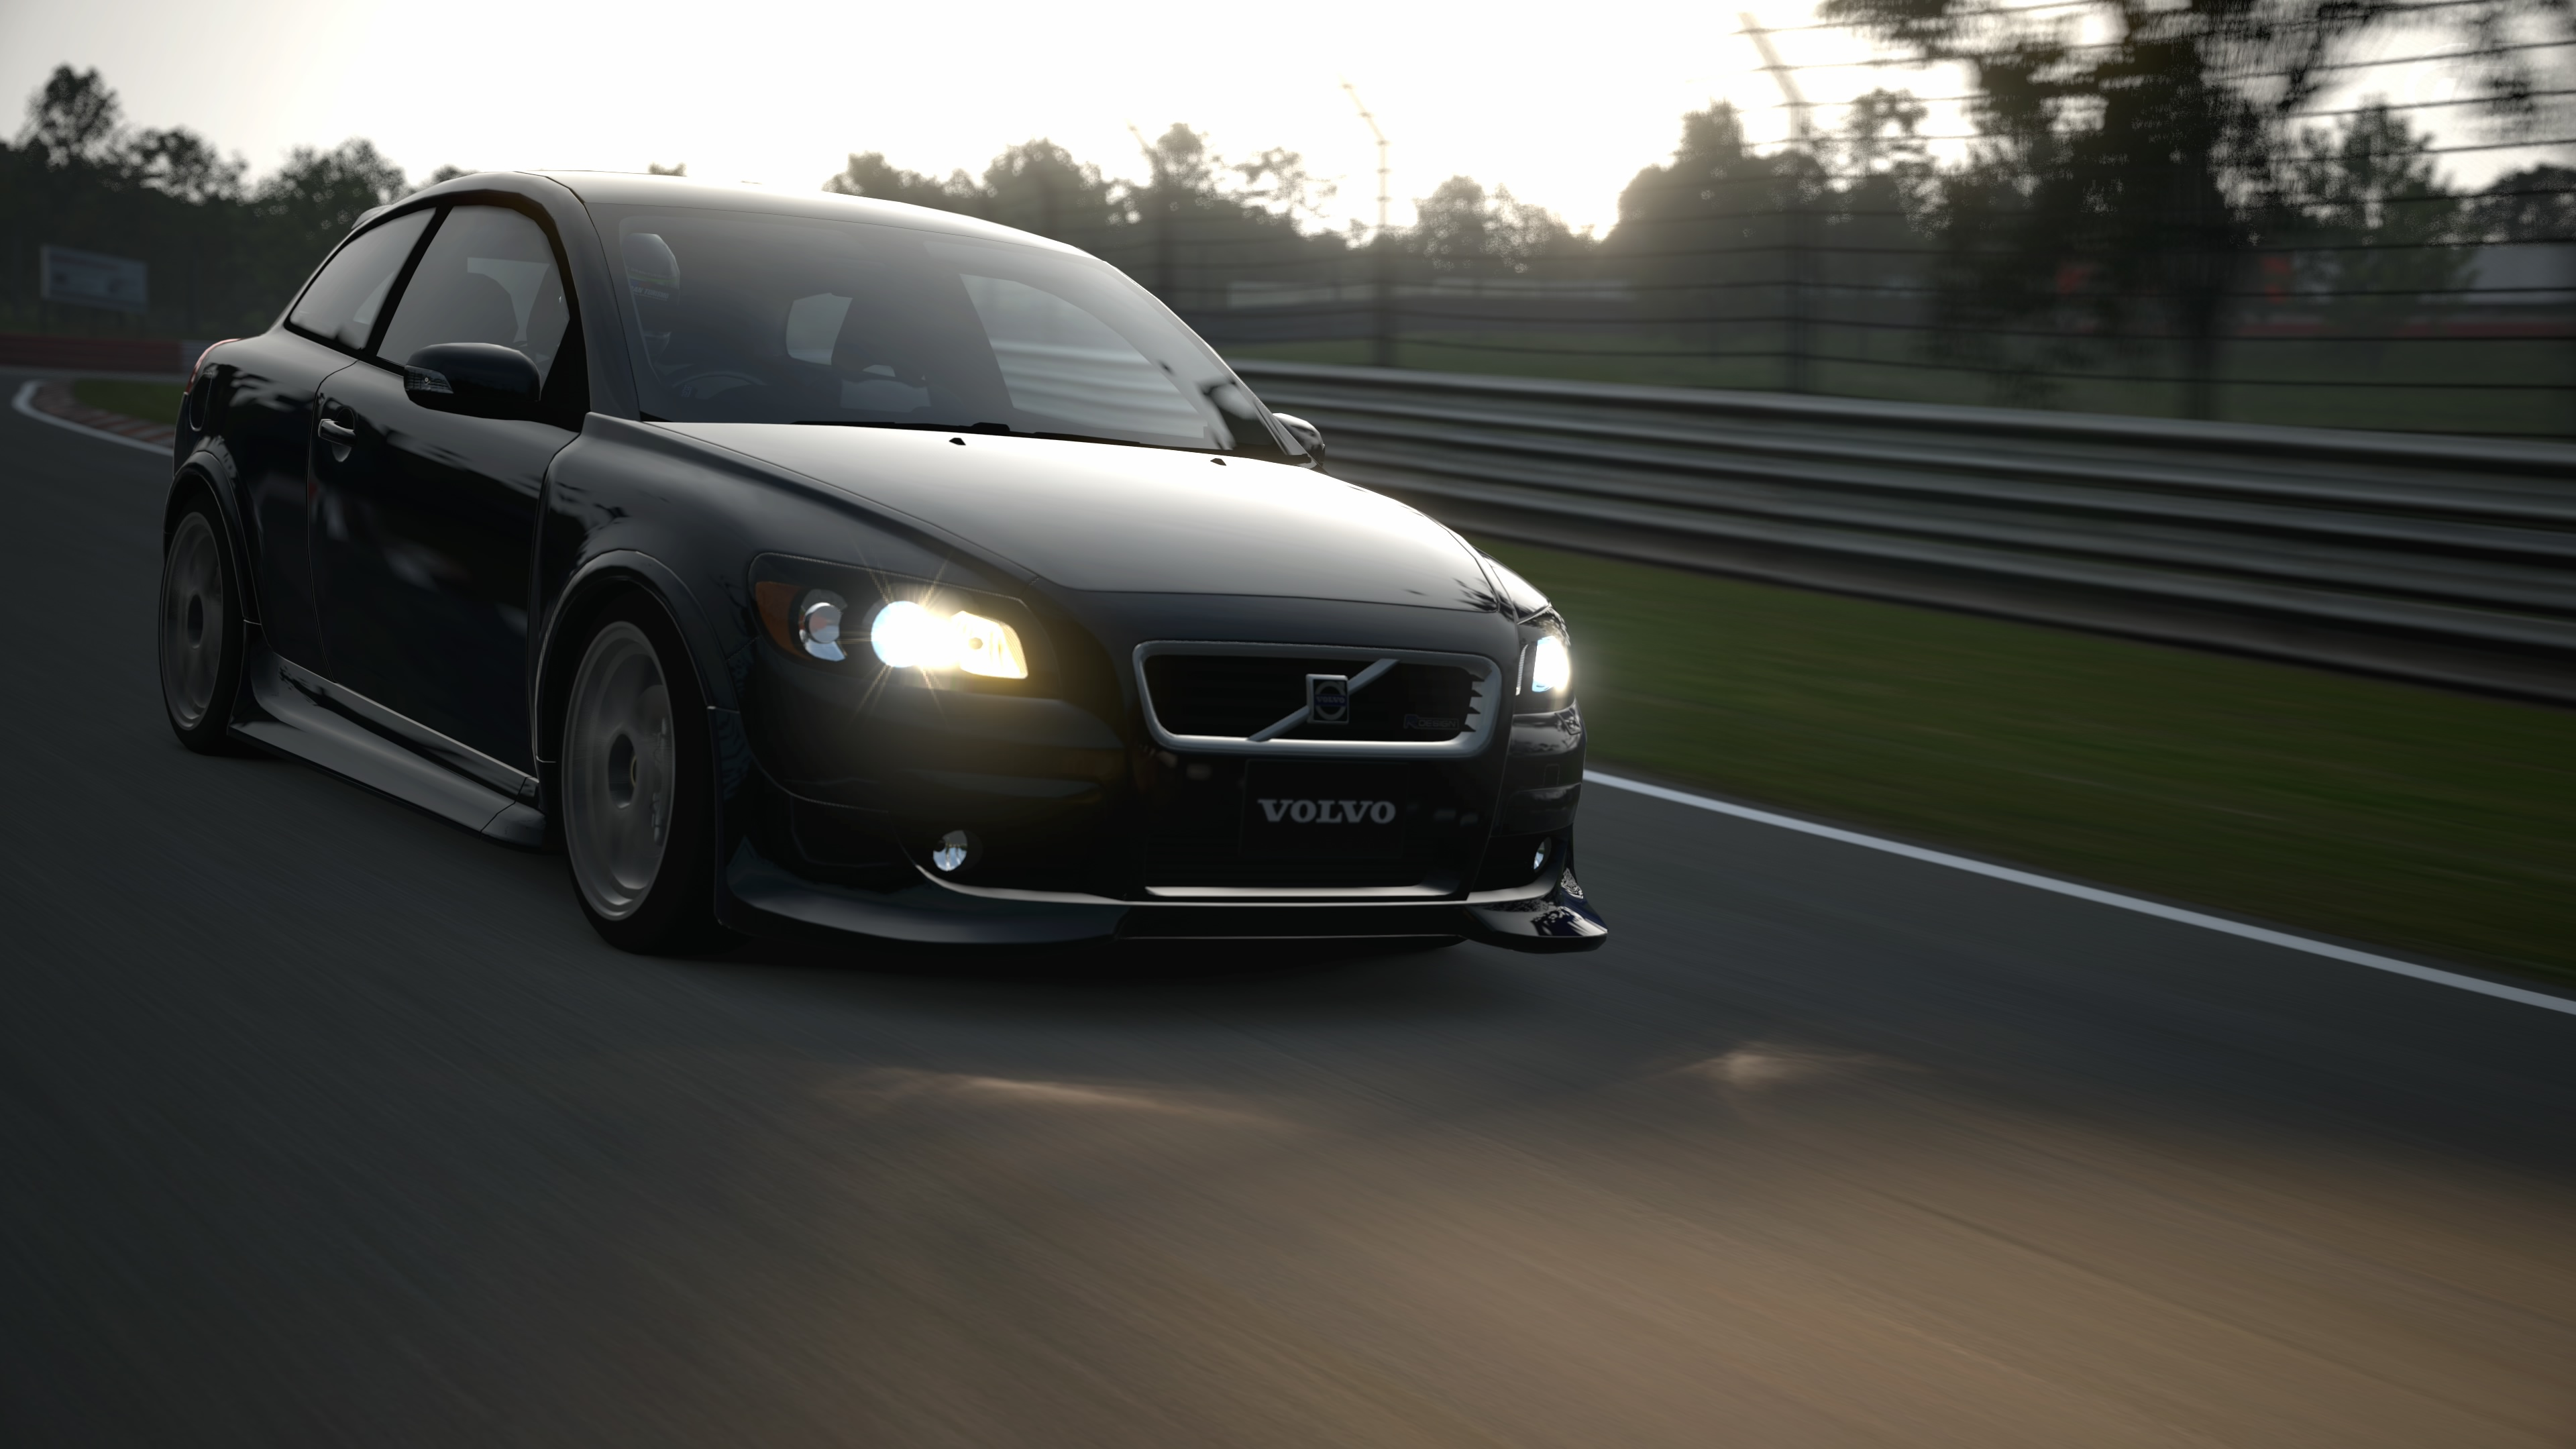 Volvo c30 r design 1 photo